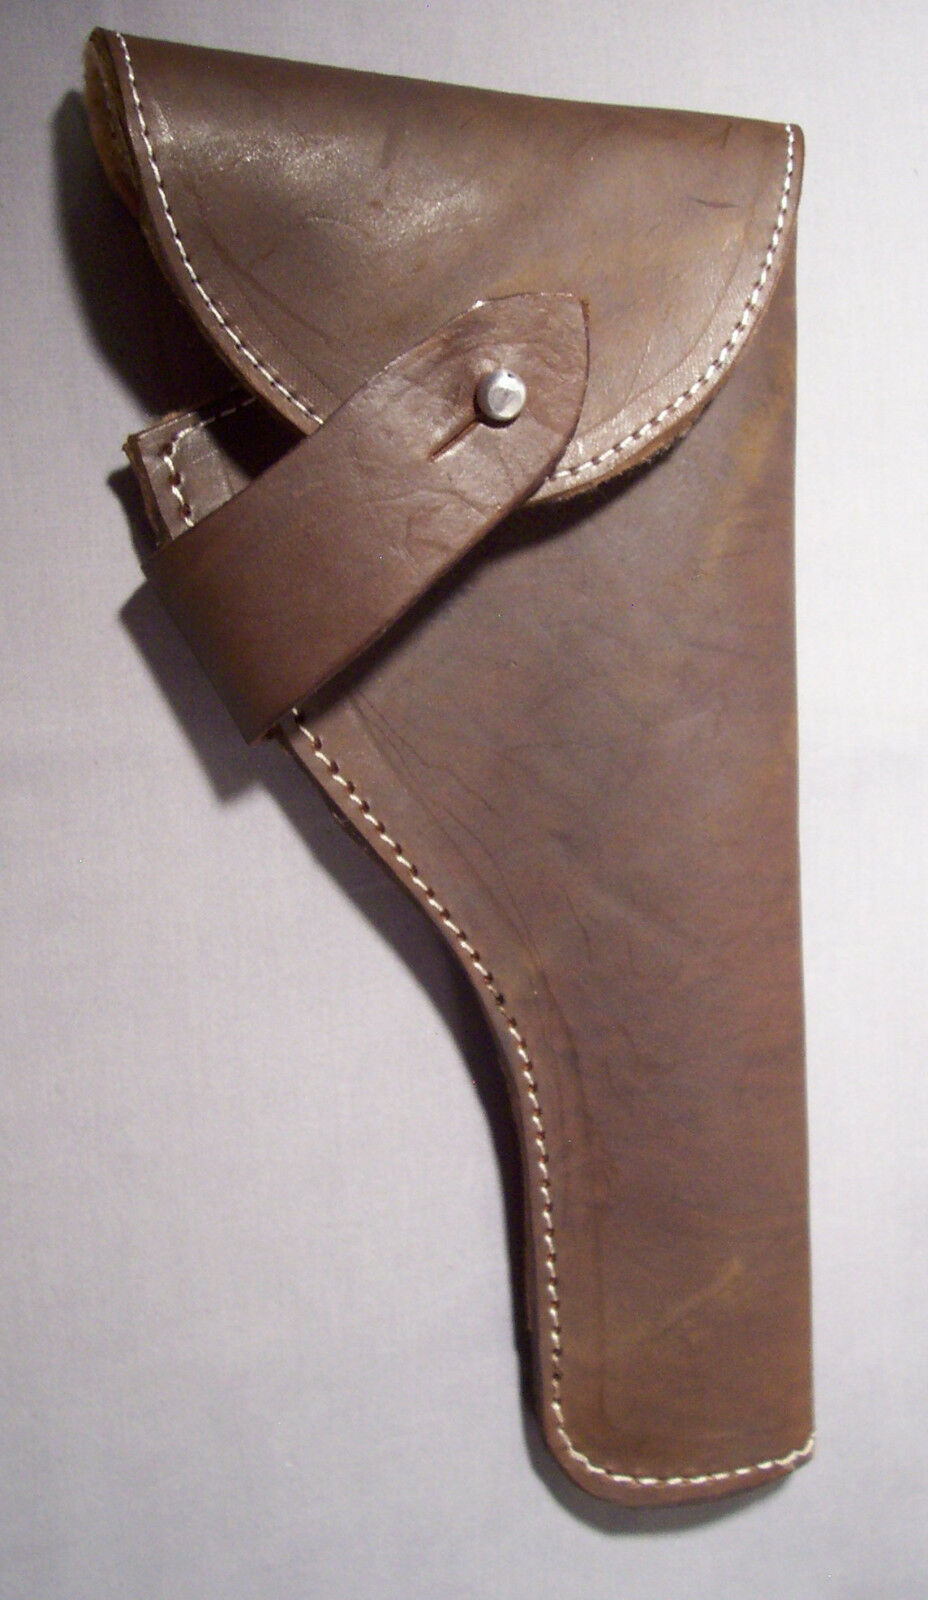 12 INCH DARK BROWN GUN HOLSTER  INDIANA JONES STYLE REPLICA  wholesape cheap